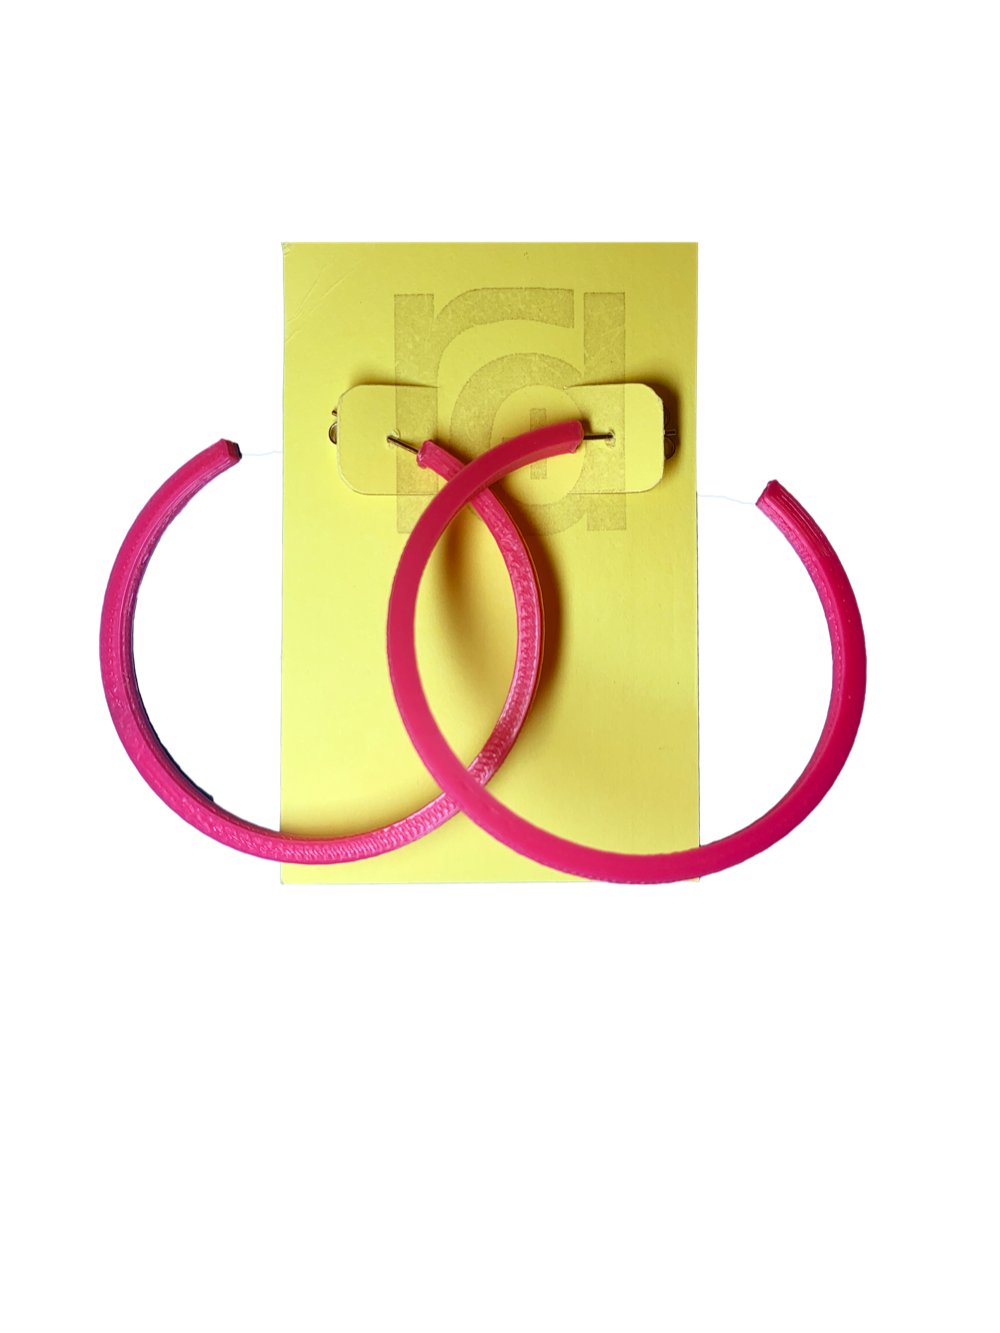 Shown on a yellow R+D card are two 3D printed hoop earrings. They are large two inch hoops in a bright hot pink  that are lightweight and plant based.